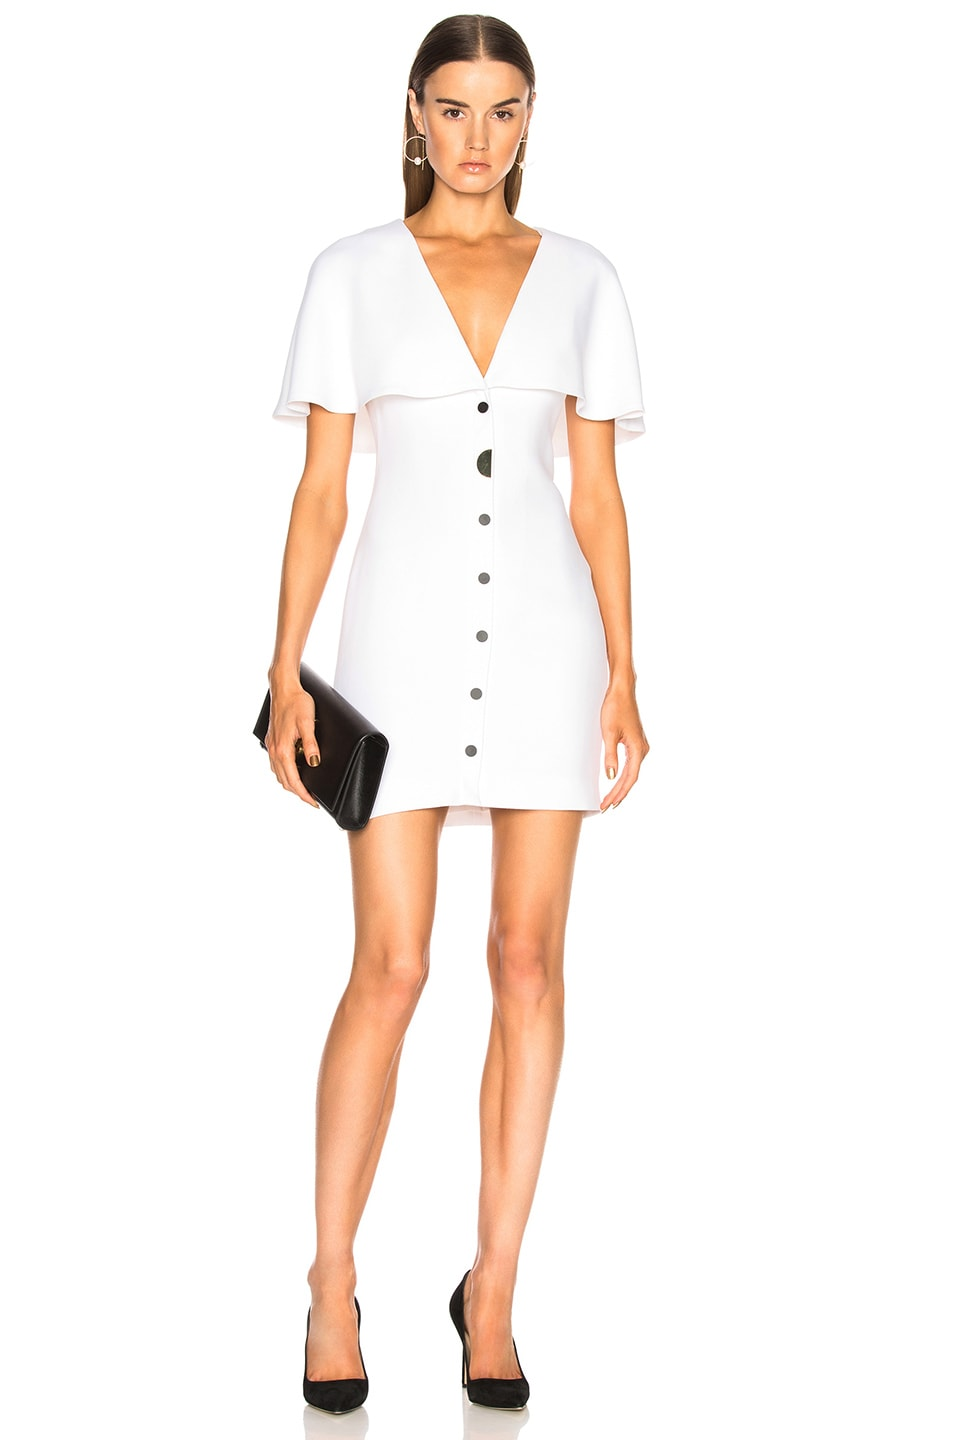 Cushnie et Ochs Celia Dress in White